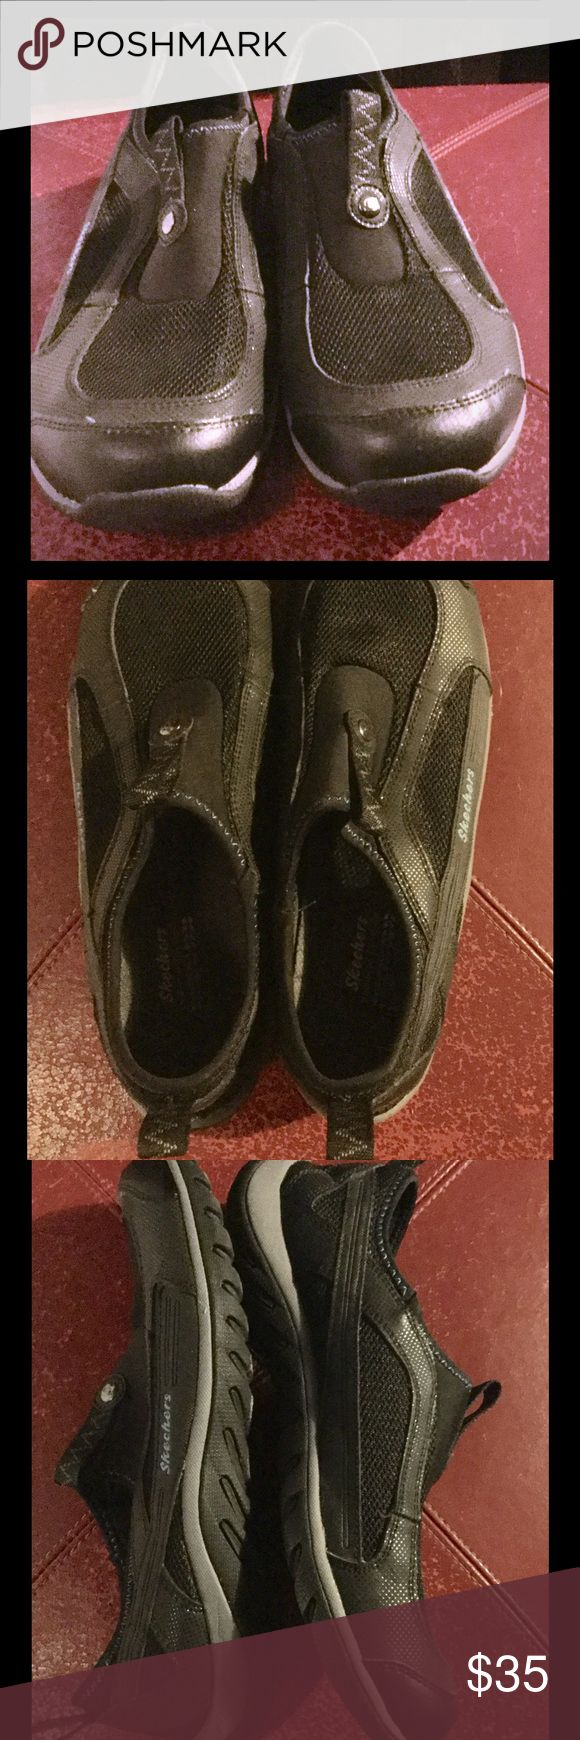 Skechers ladies slip on Size 9.5 womens, used but looks new! Good for walking. Beach/Water shoes. This one looks almost NEW!! To see is  to believe 😊👍 Skechers Shoes Flats & Loafers